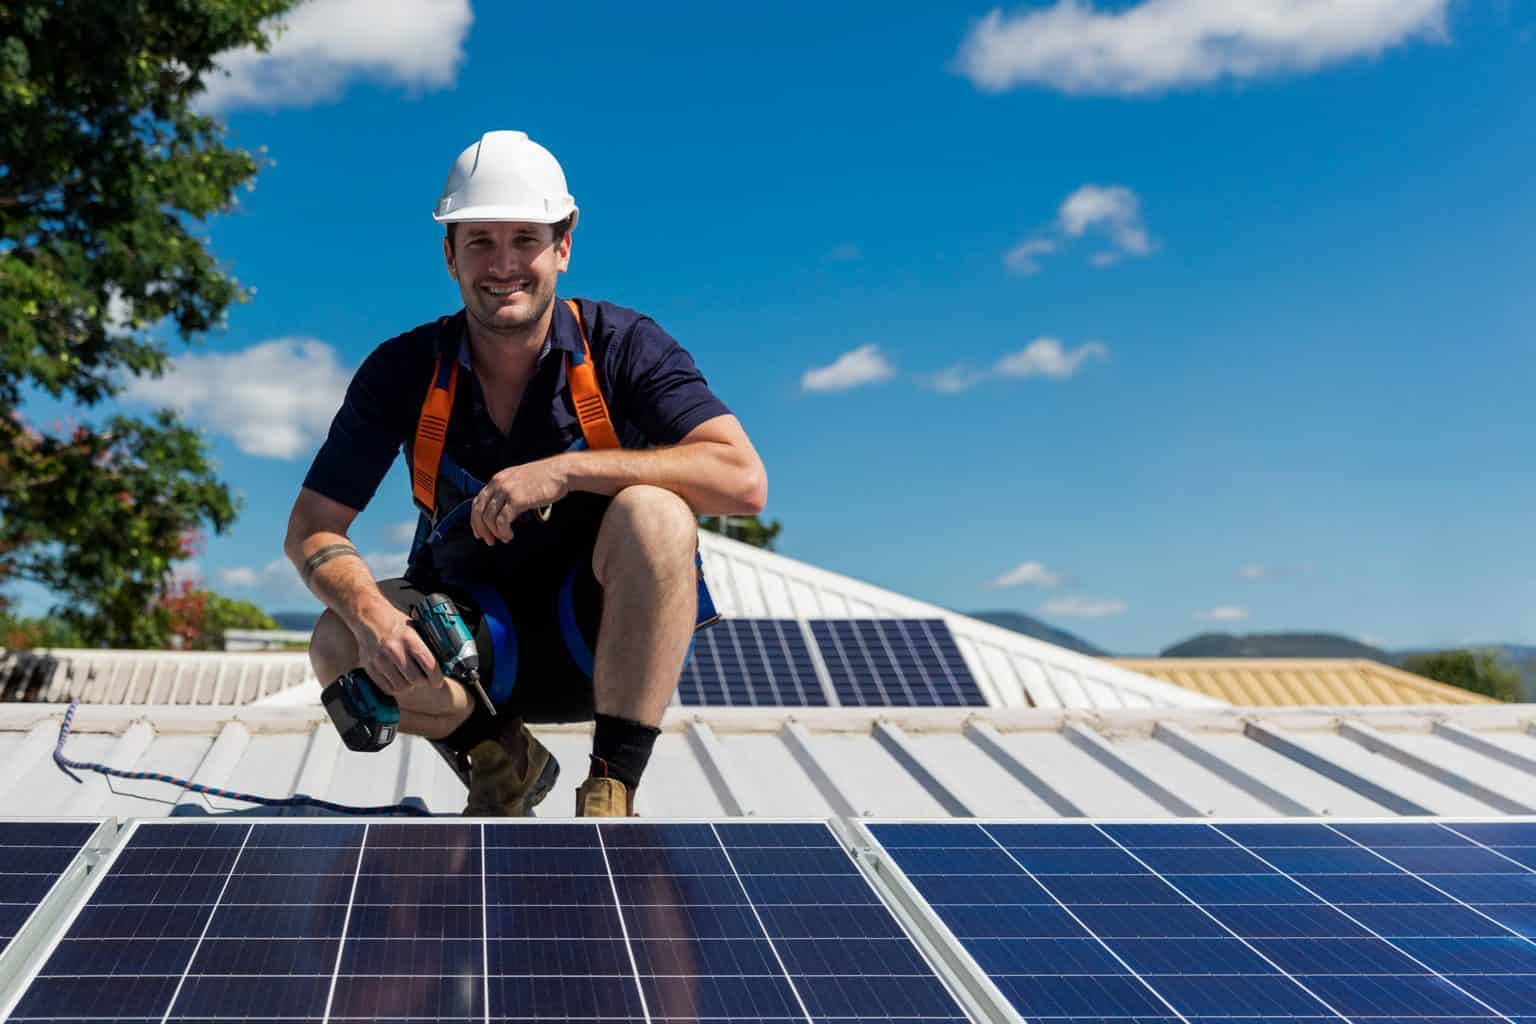 Man standing on roof next to solar panels